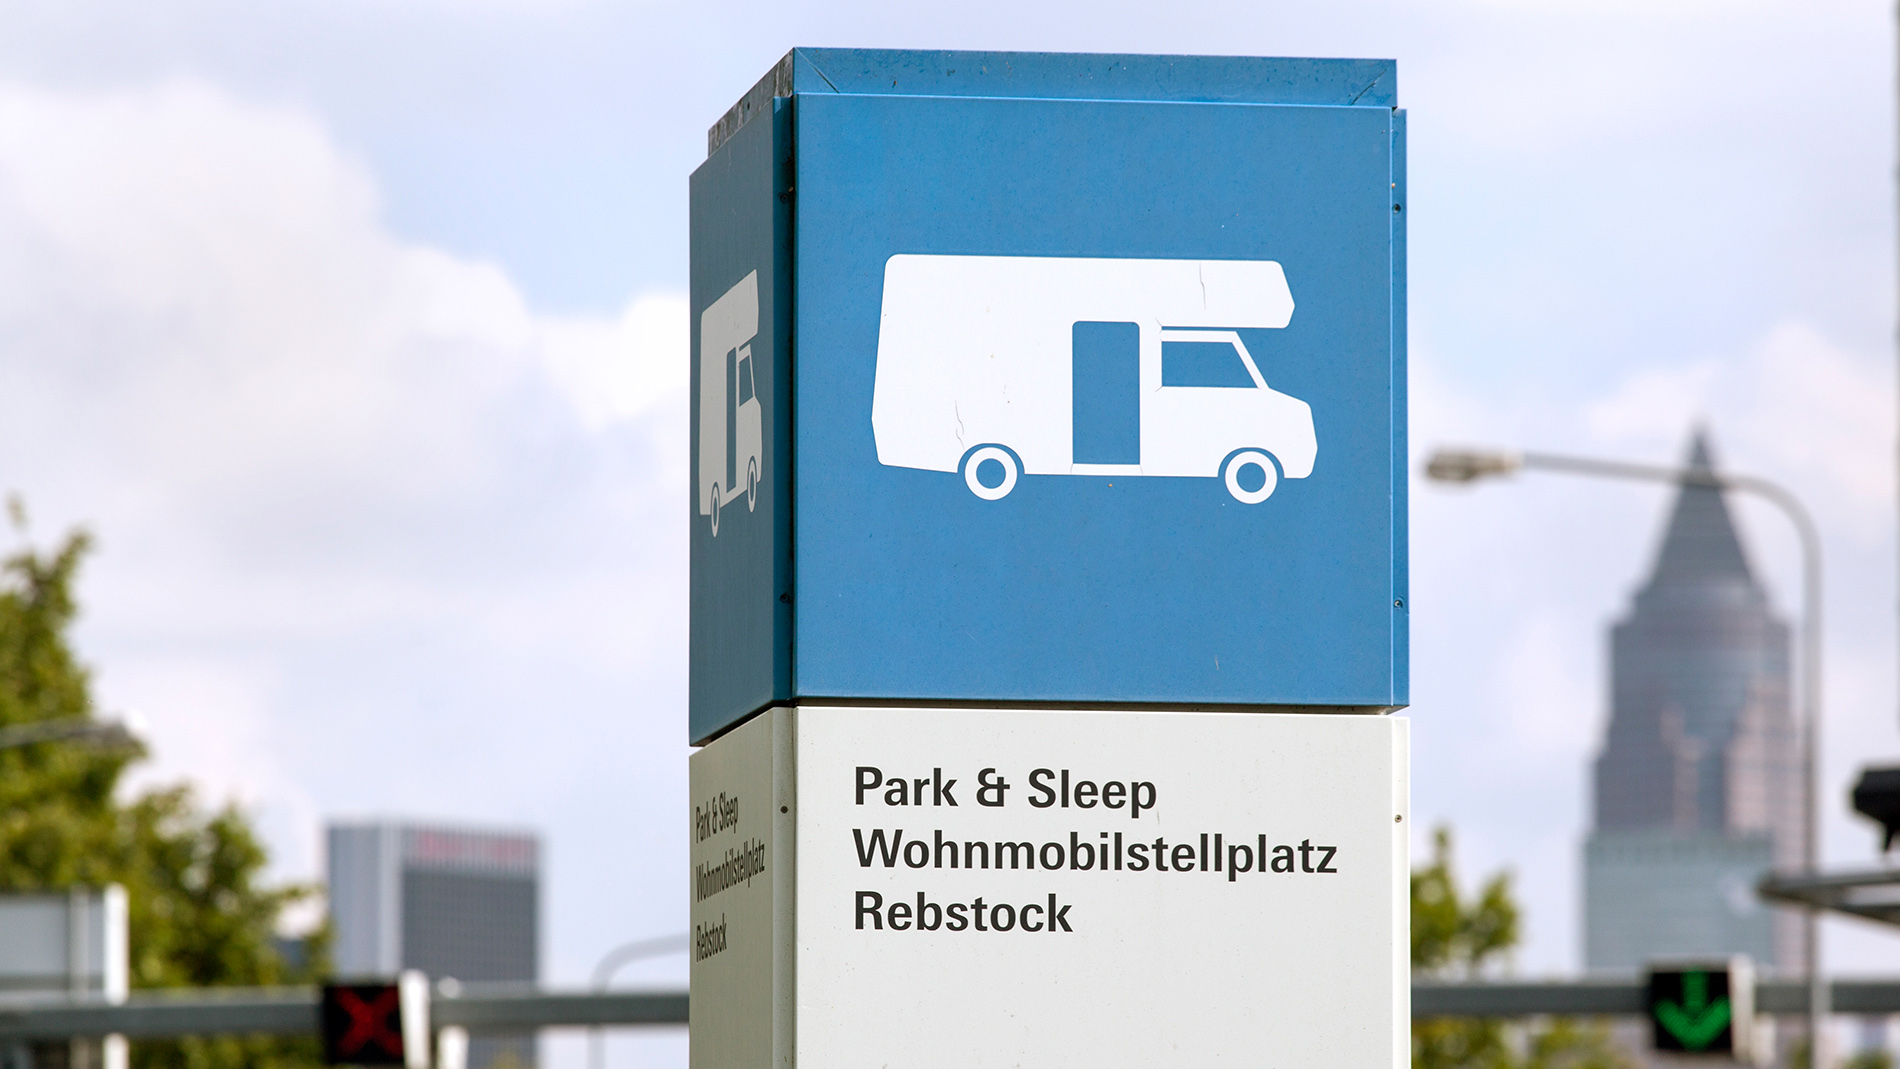 Park & Sleep sign for travelling to the trade fair (Messe Frankfurt) by caravan